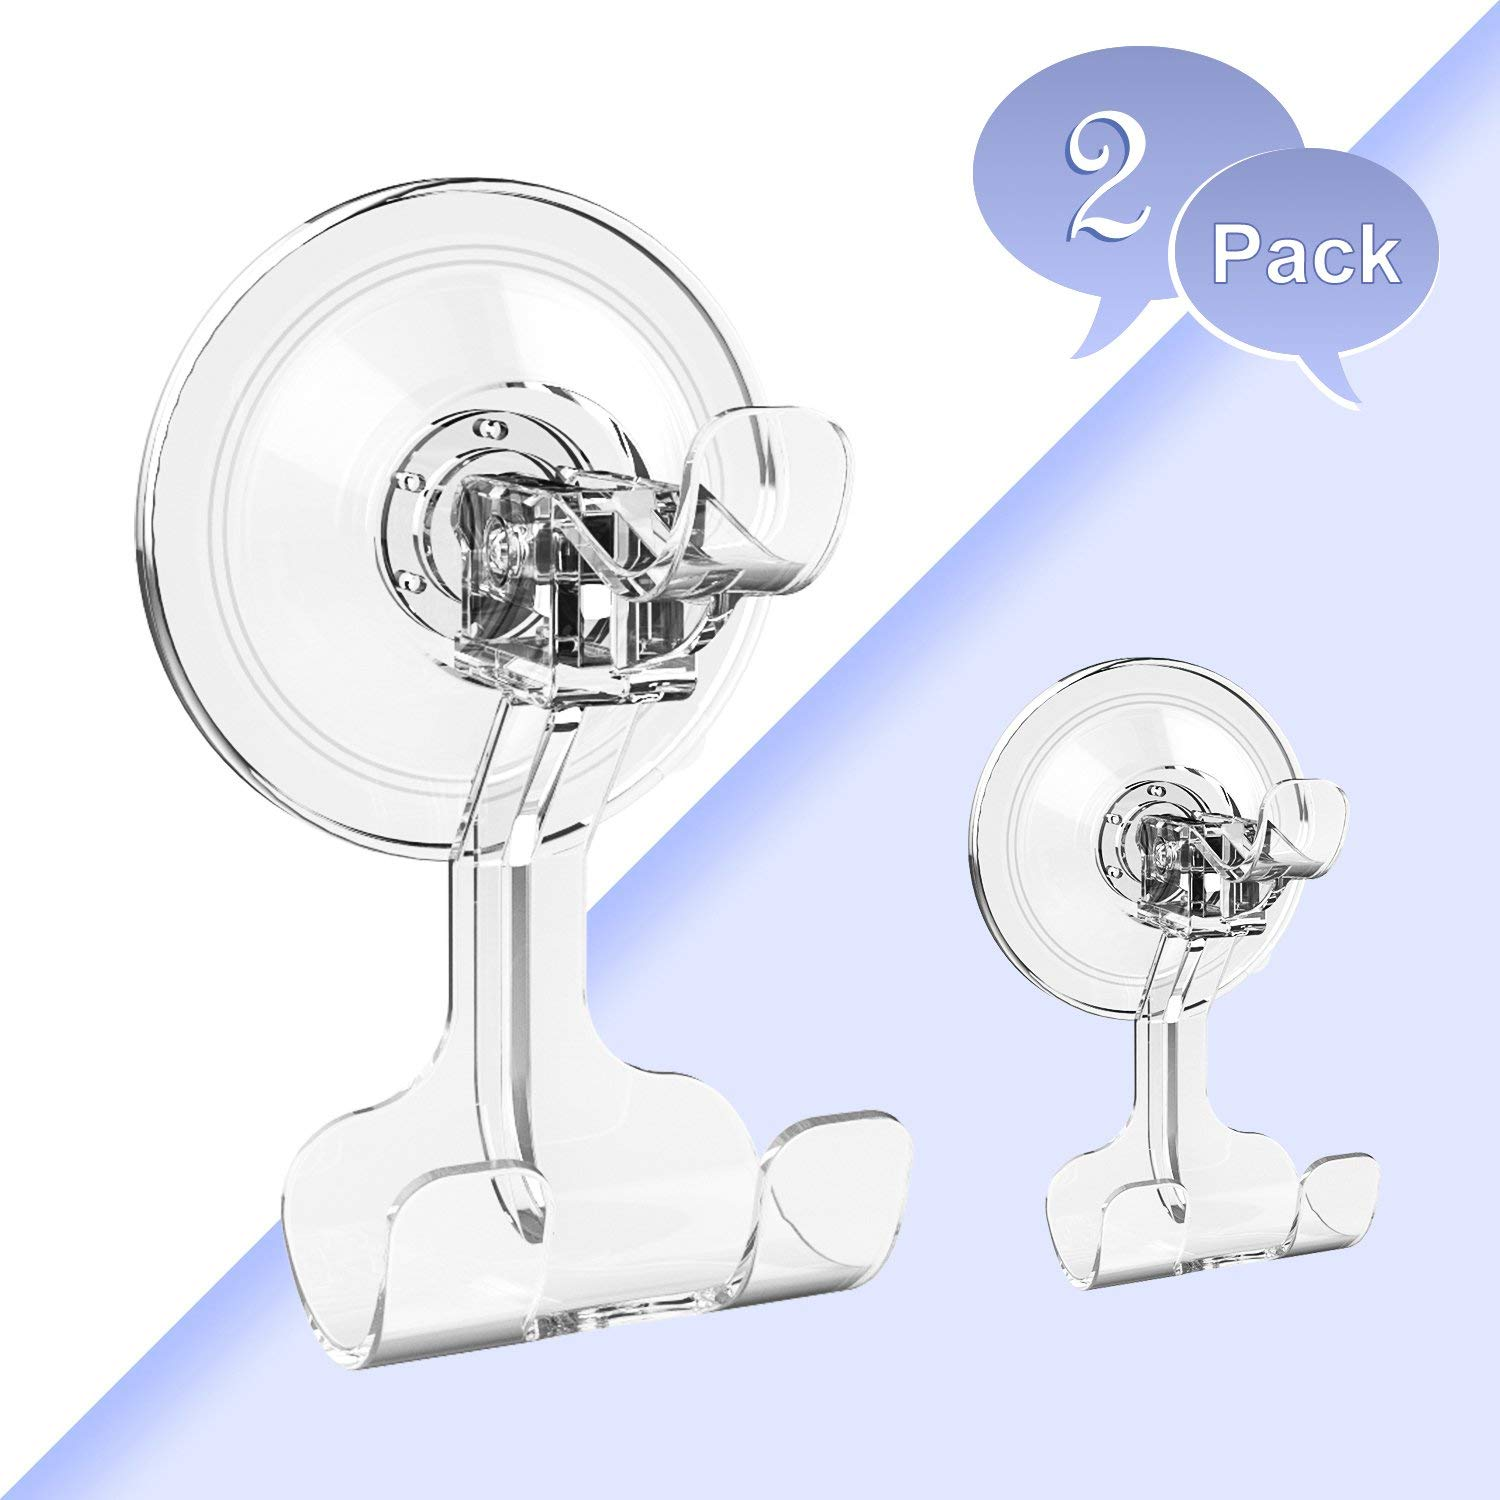 BUDGET & GOOD Suction Cup Hooks Heavy Duty Suction Hooks and Razor Holder for Shower Waterproof Wreath Hanger for Towel Robe Loofah Bathroom and Kitchen Accessories, 2 Pack Clear